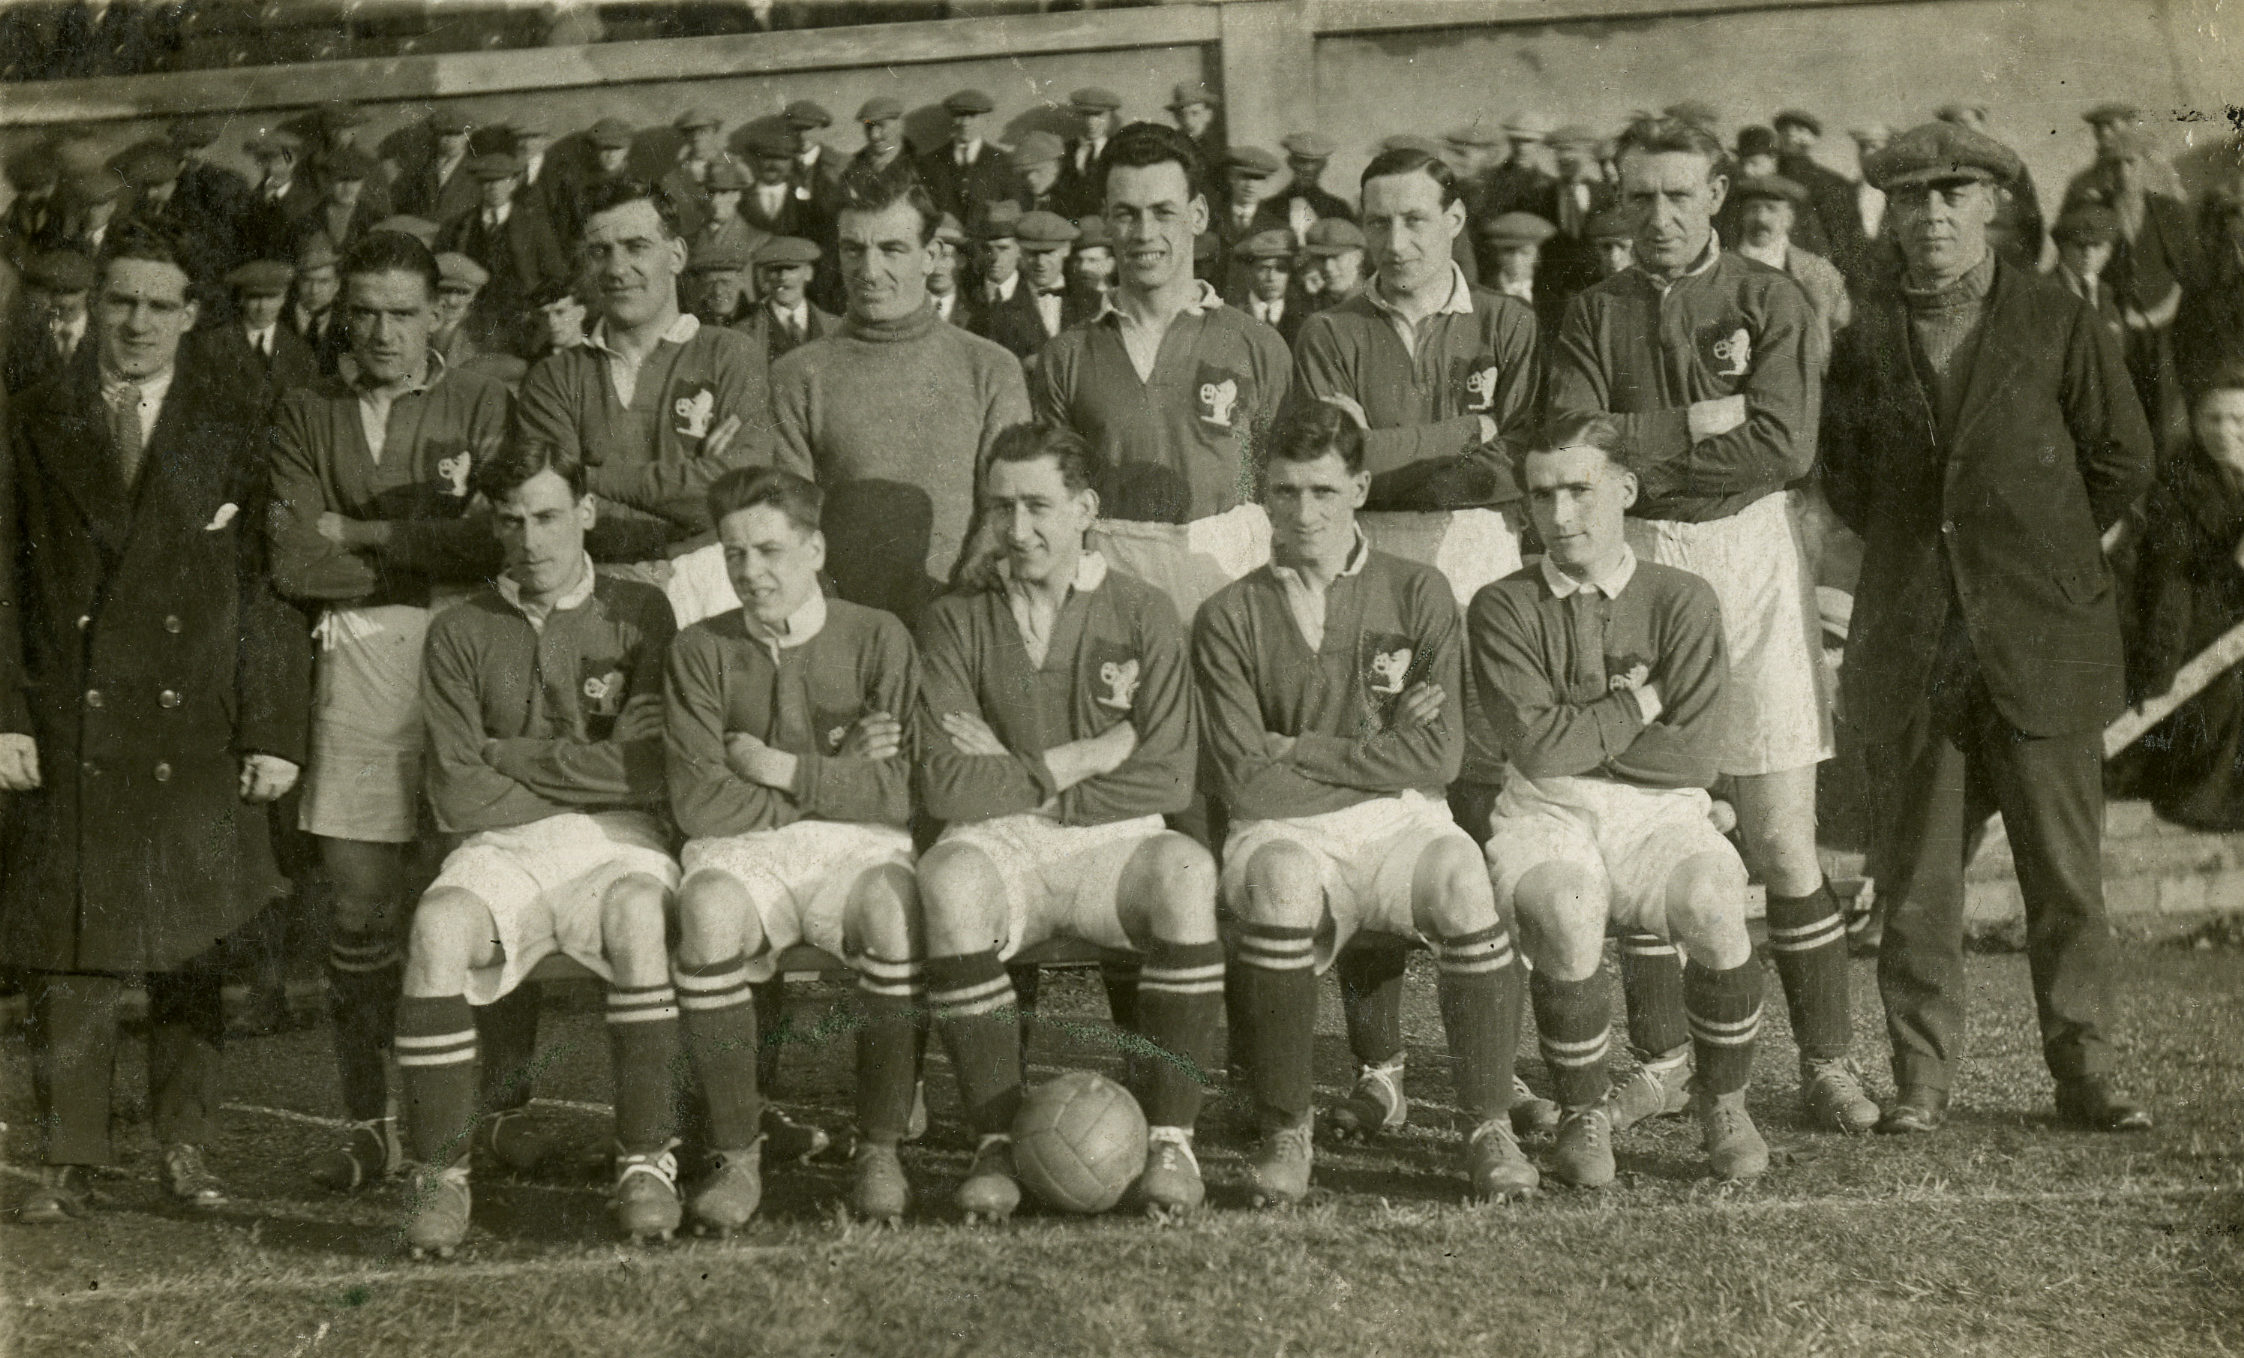 Raith Rovers pictured in the early 1920s.